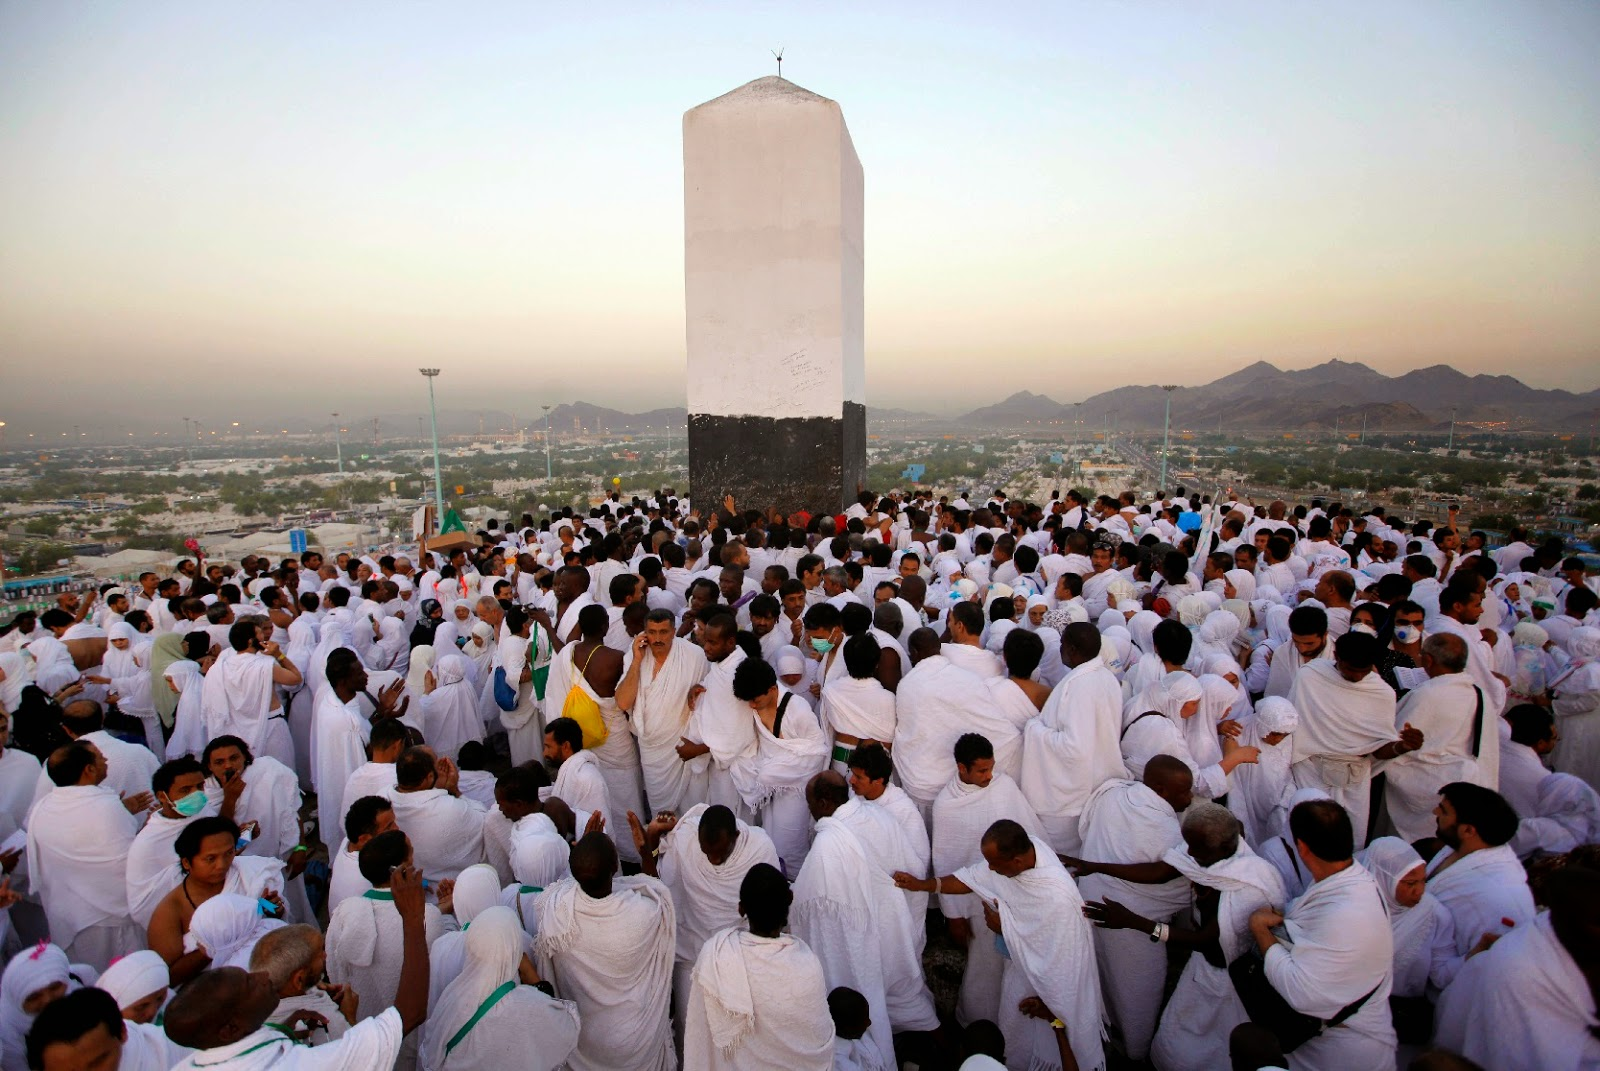 Hajj Background - Download Free Hajj Backgrounds and Wallpapers